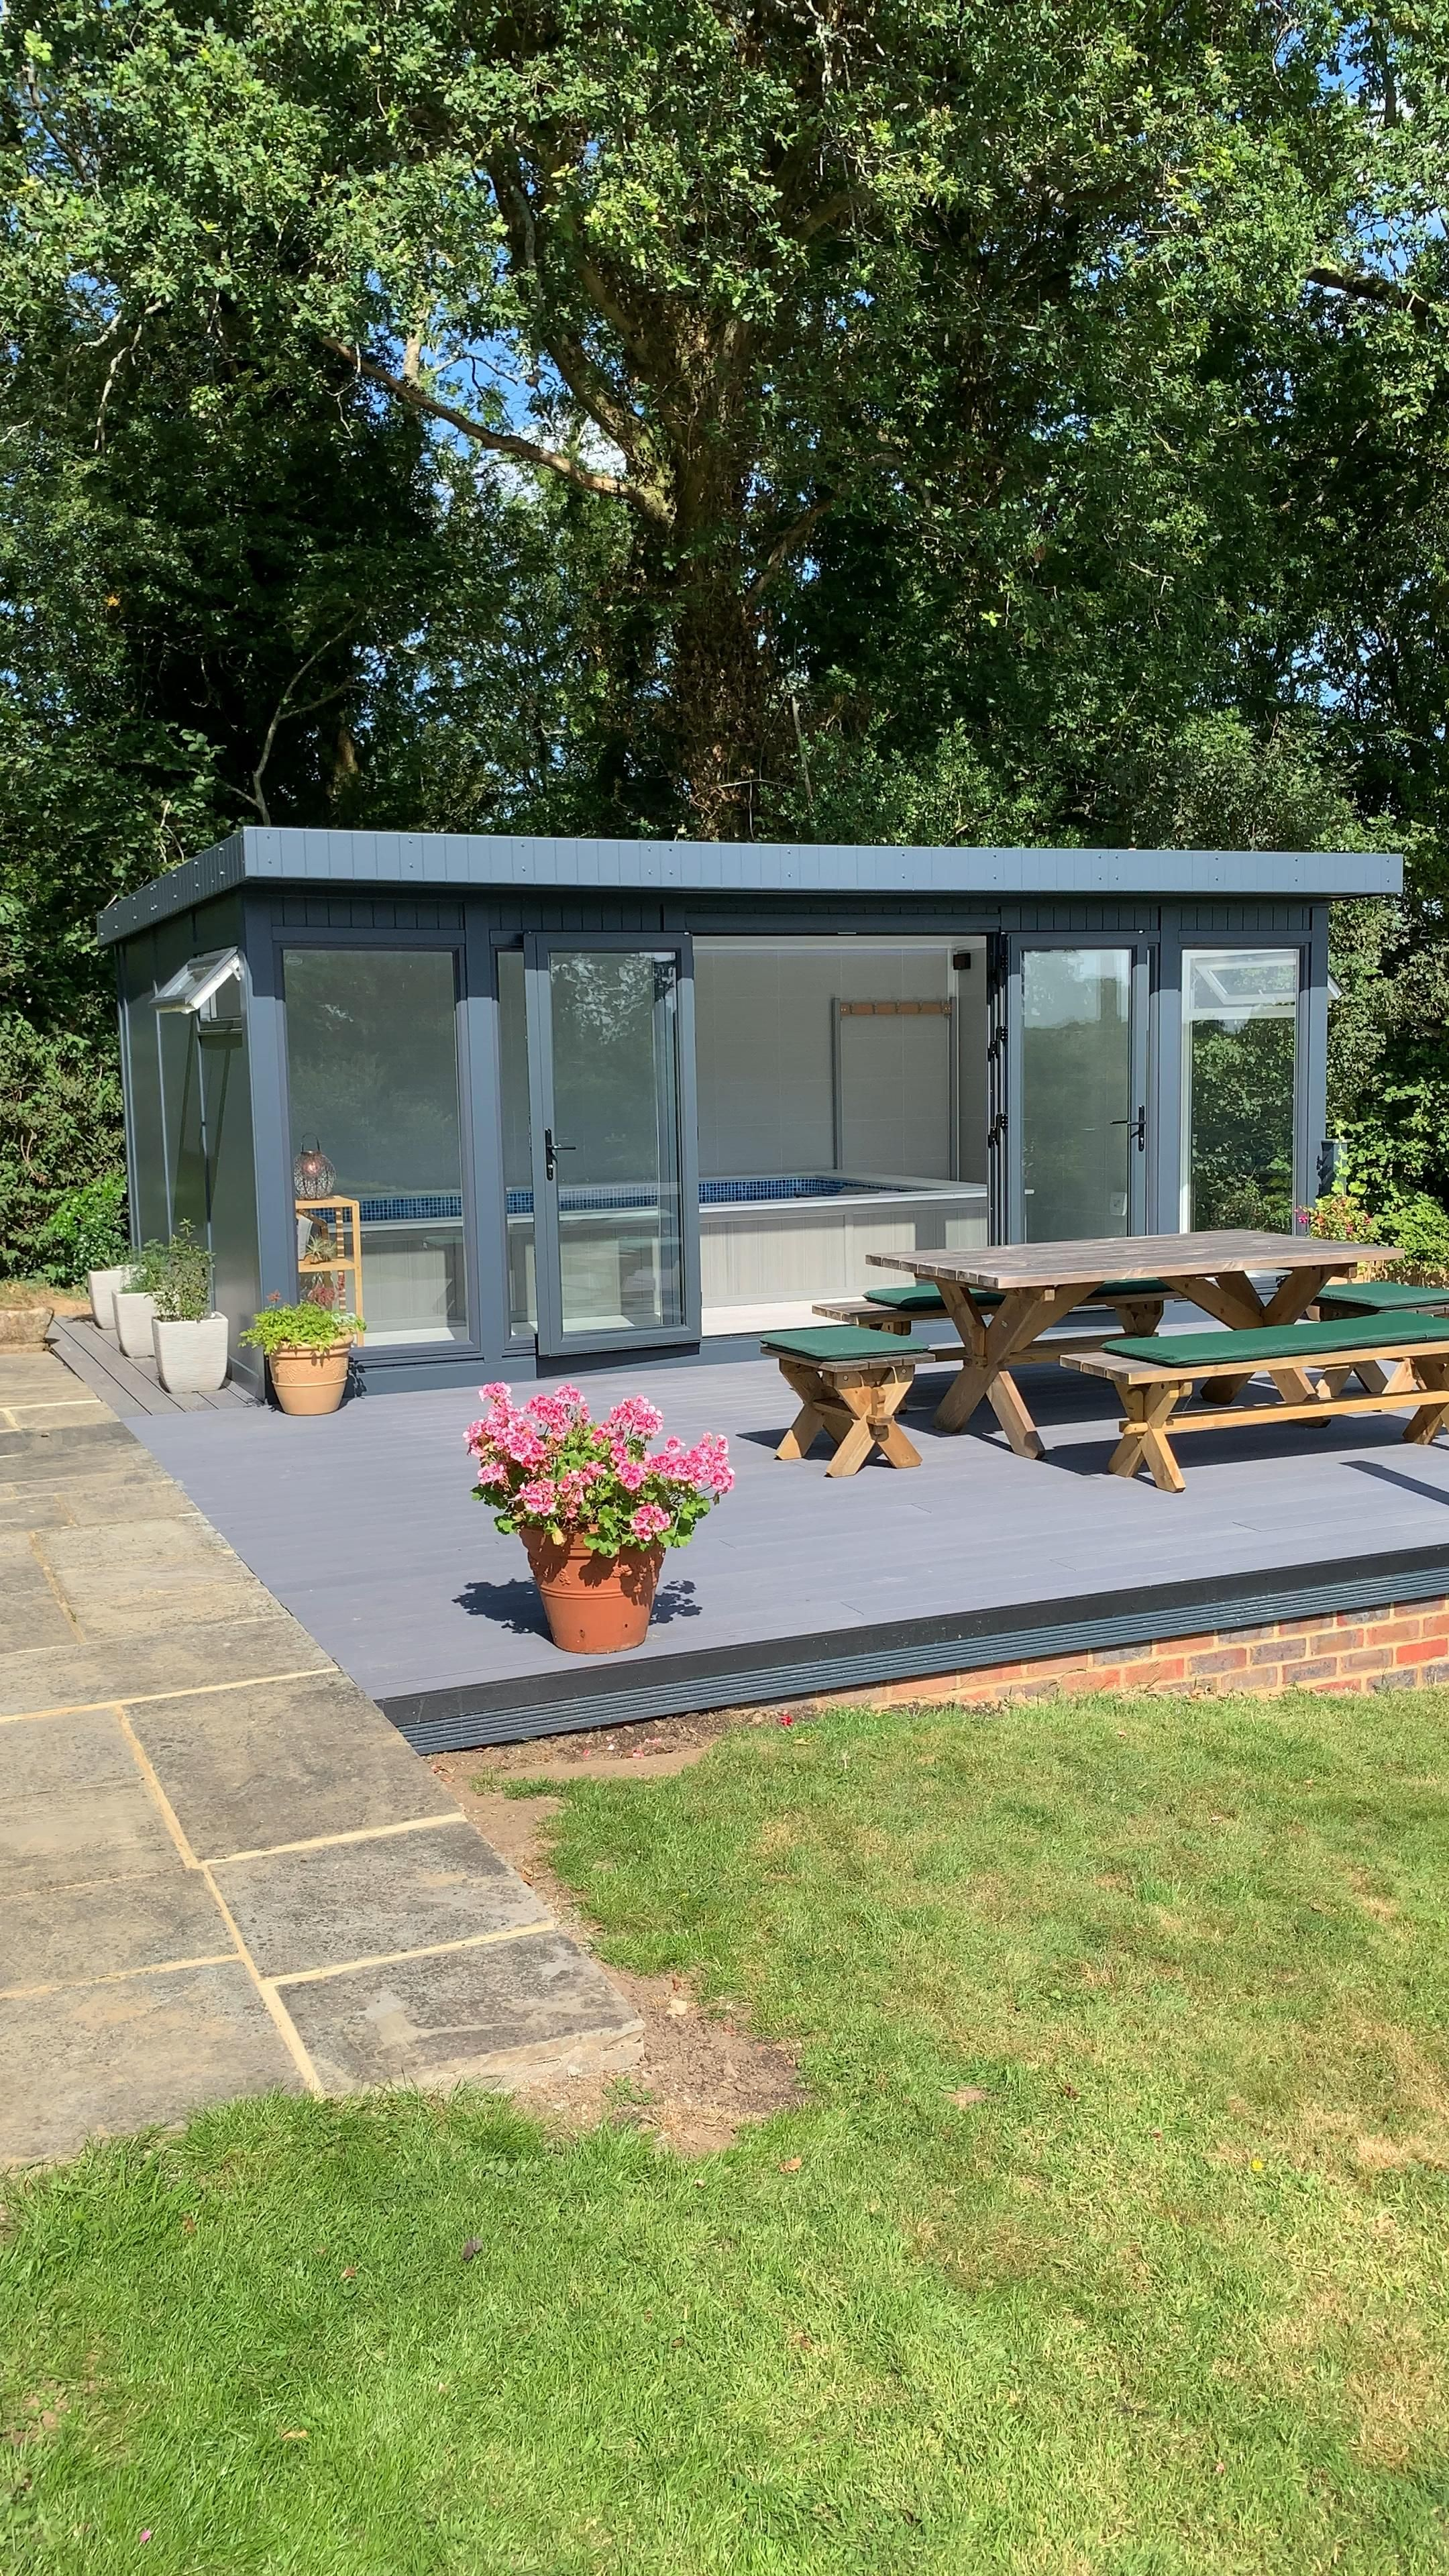 Ref 5847 Contemporary Garden Room Feat Endless Pool Decking Area Sussex Video In 2020 Contemporary Garden Rooms Endless Pool Garden Room 400+ garden and backyard landscape design ideas